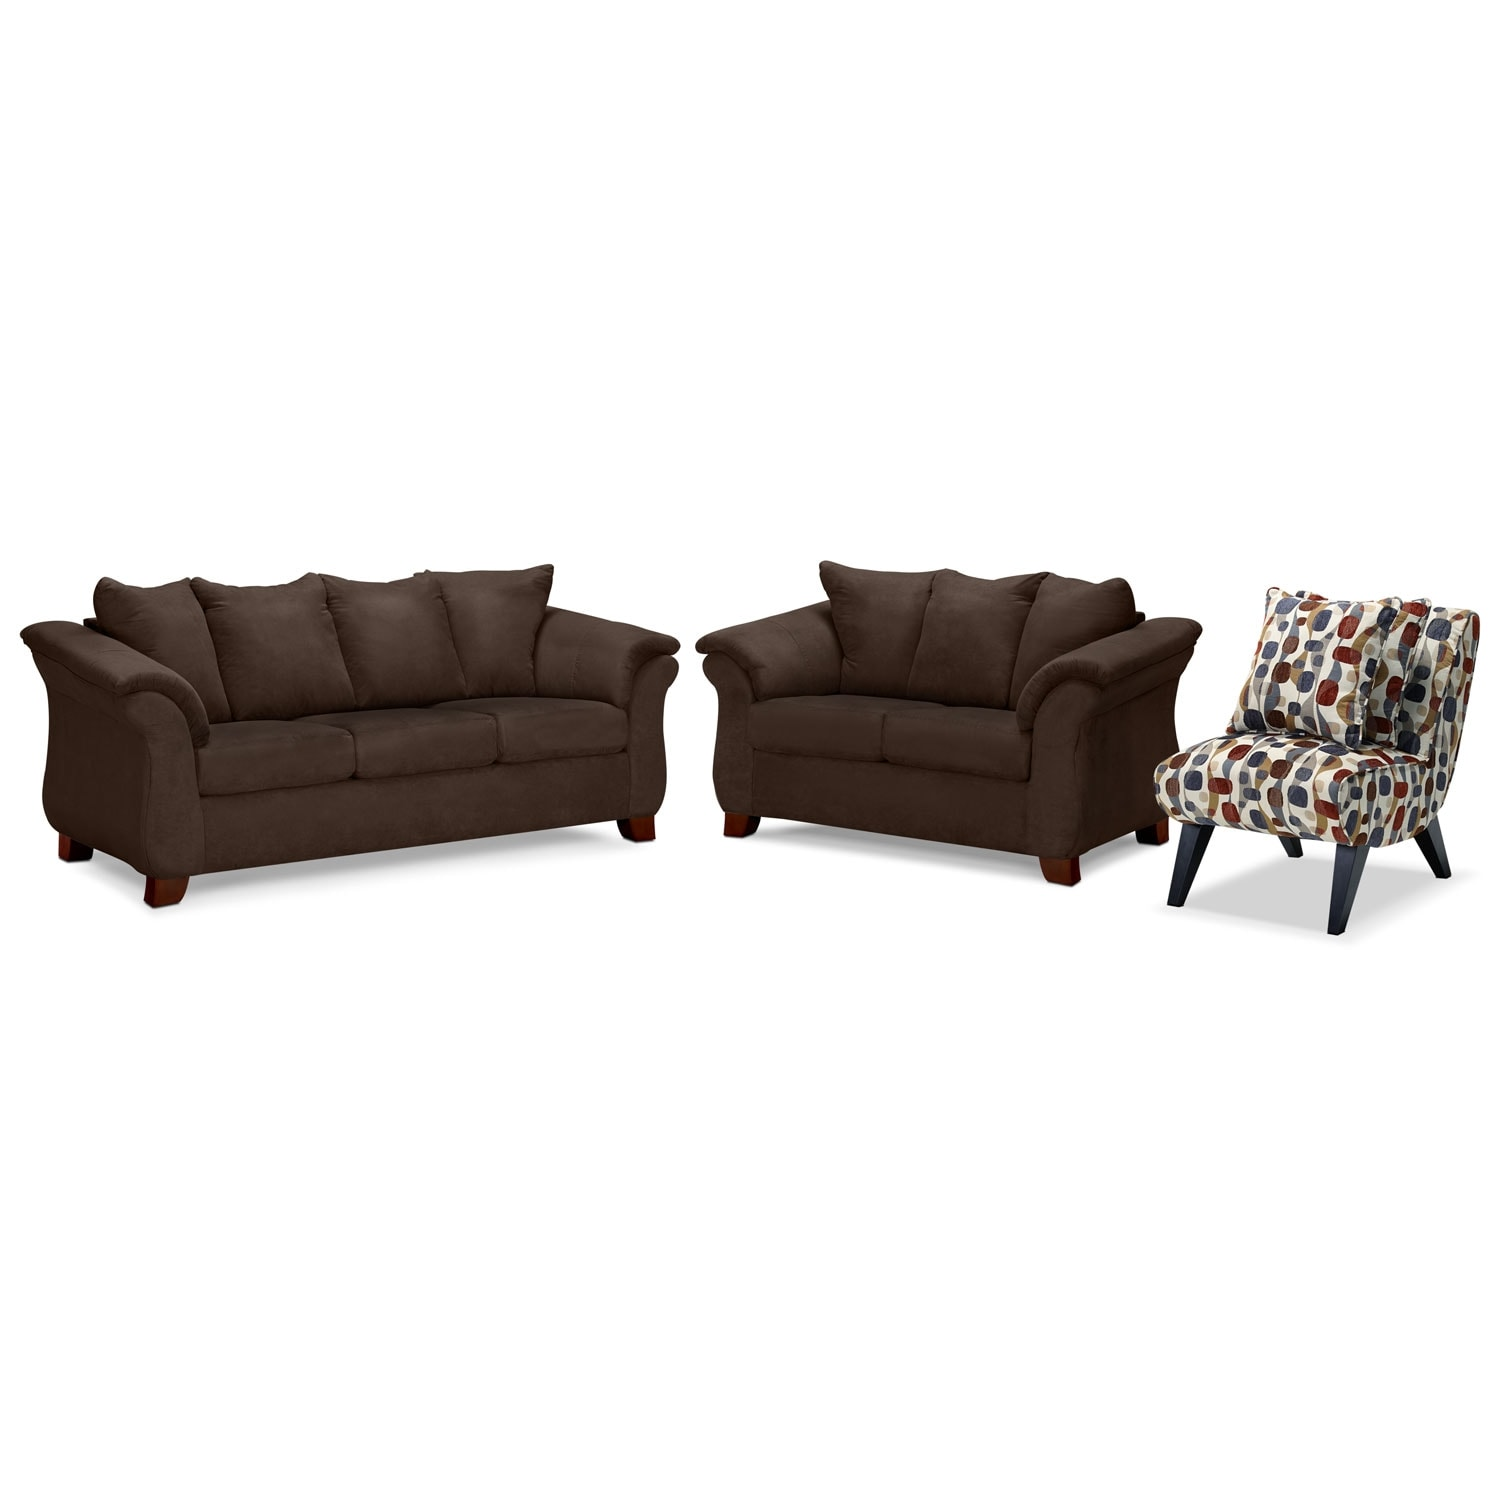 Living Room Furniture - Adrian Sofa, Loveseat and Accent Chair Set - Chocolate